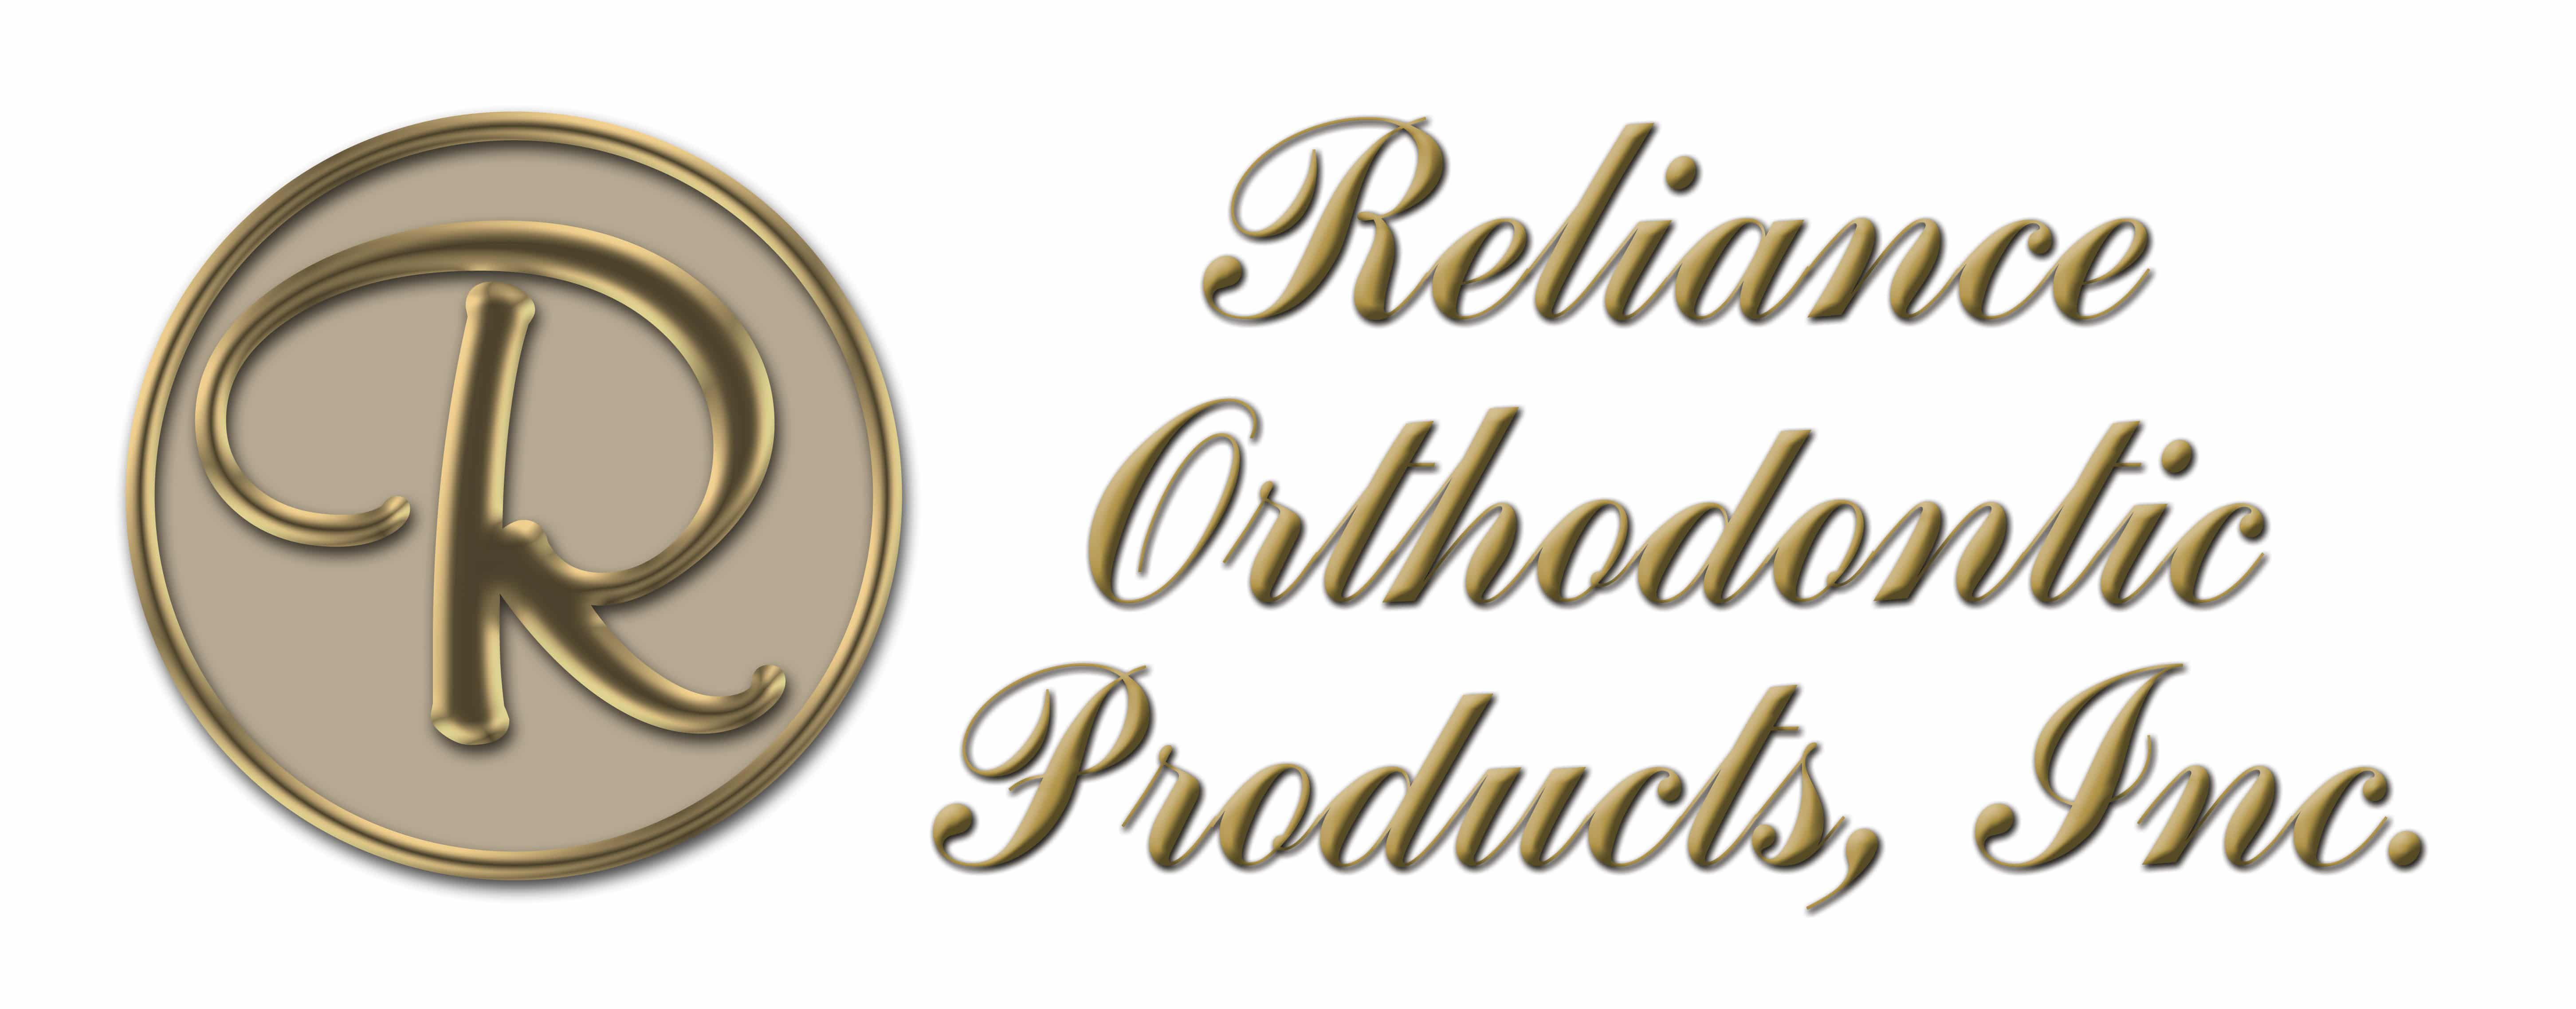 Reliance Orthodontic Products, Inc.